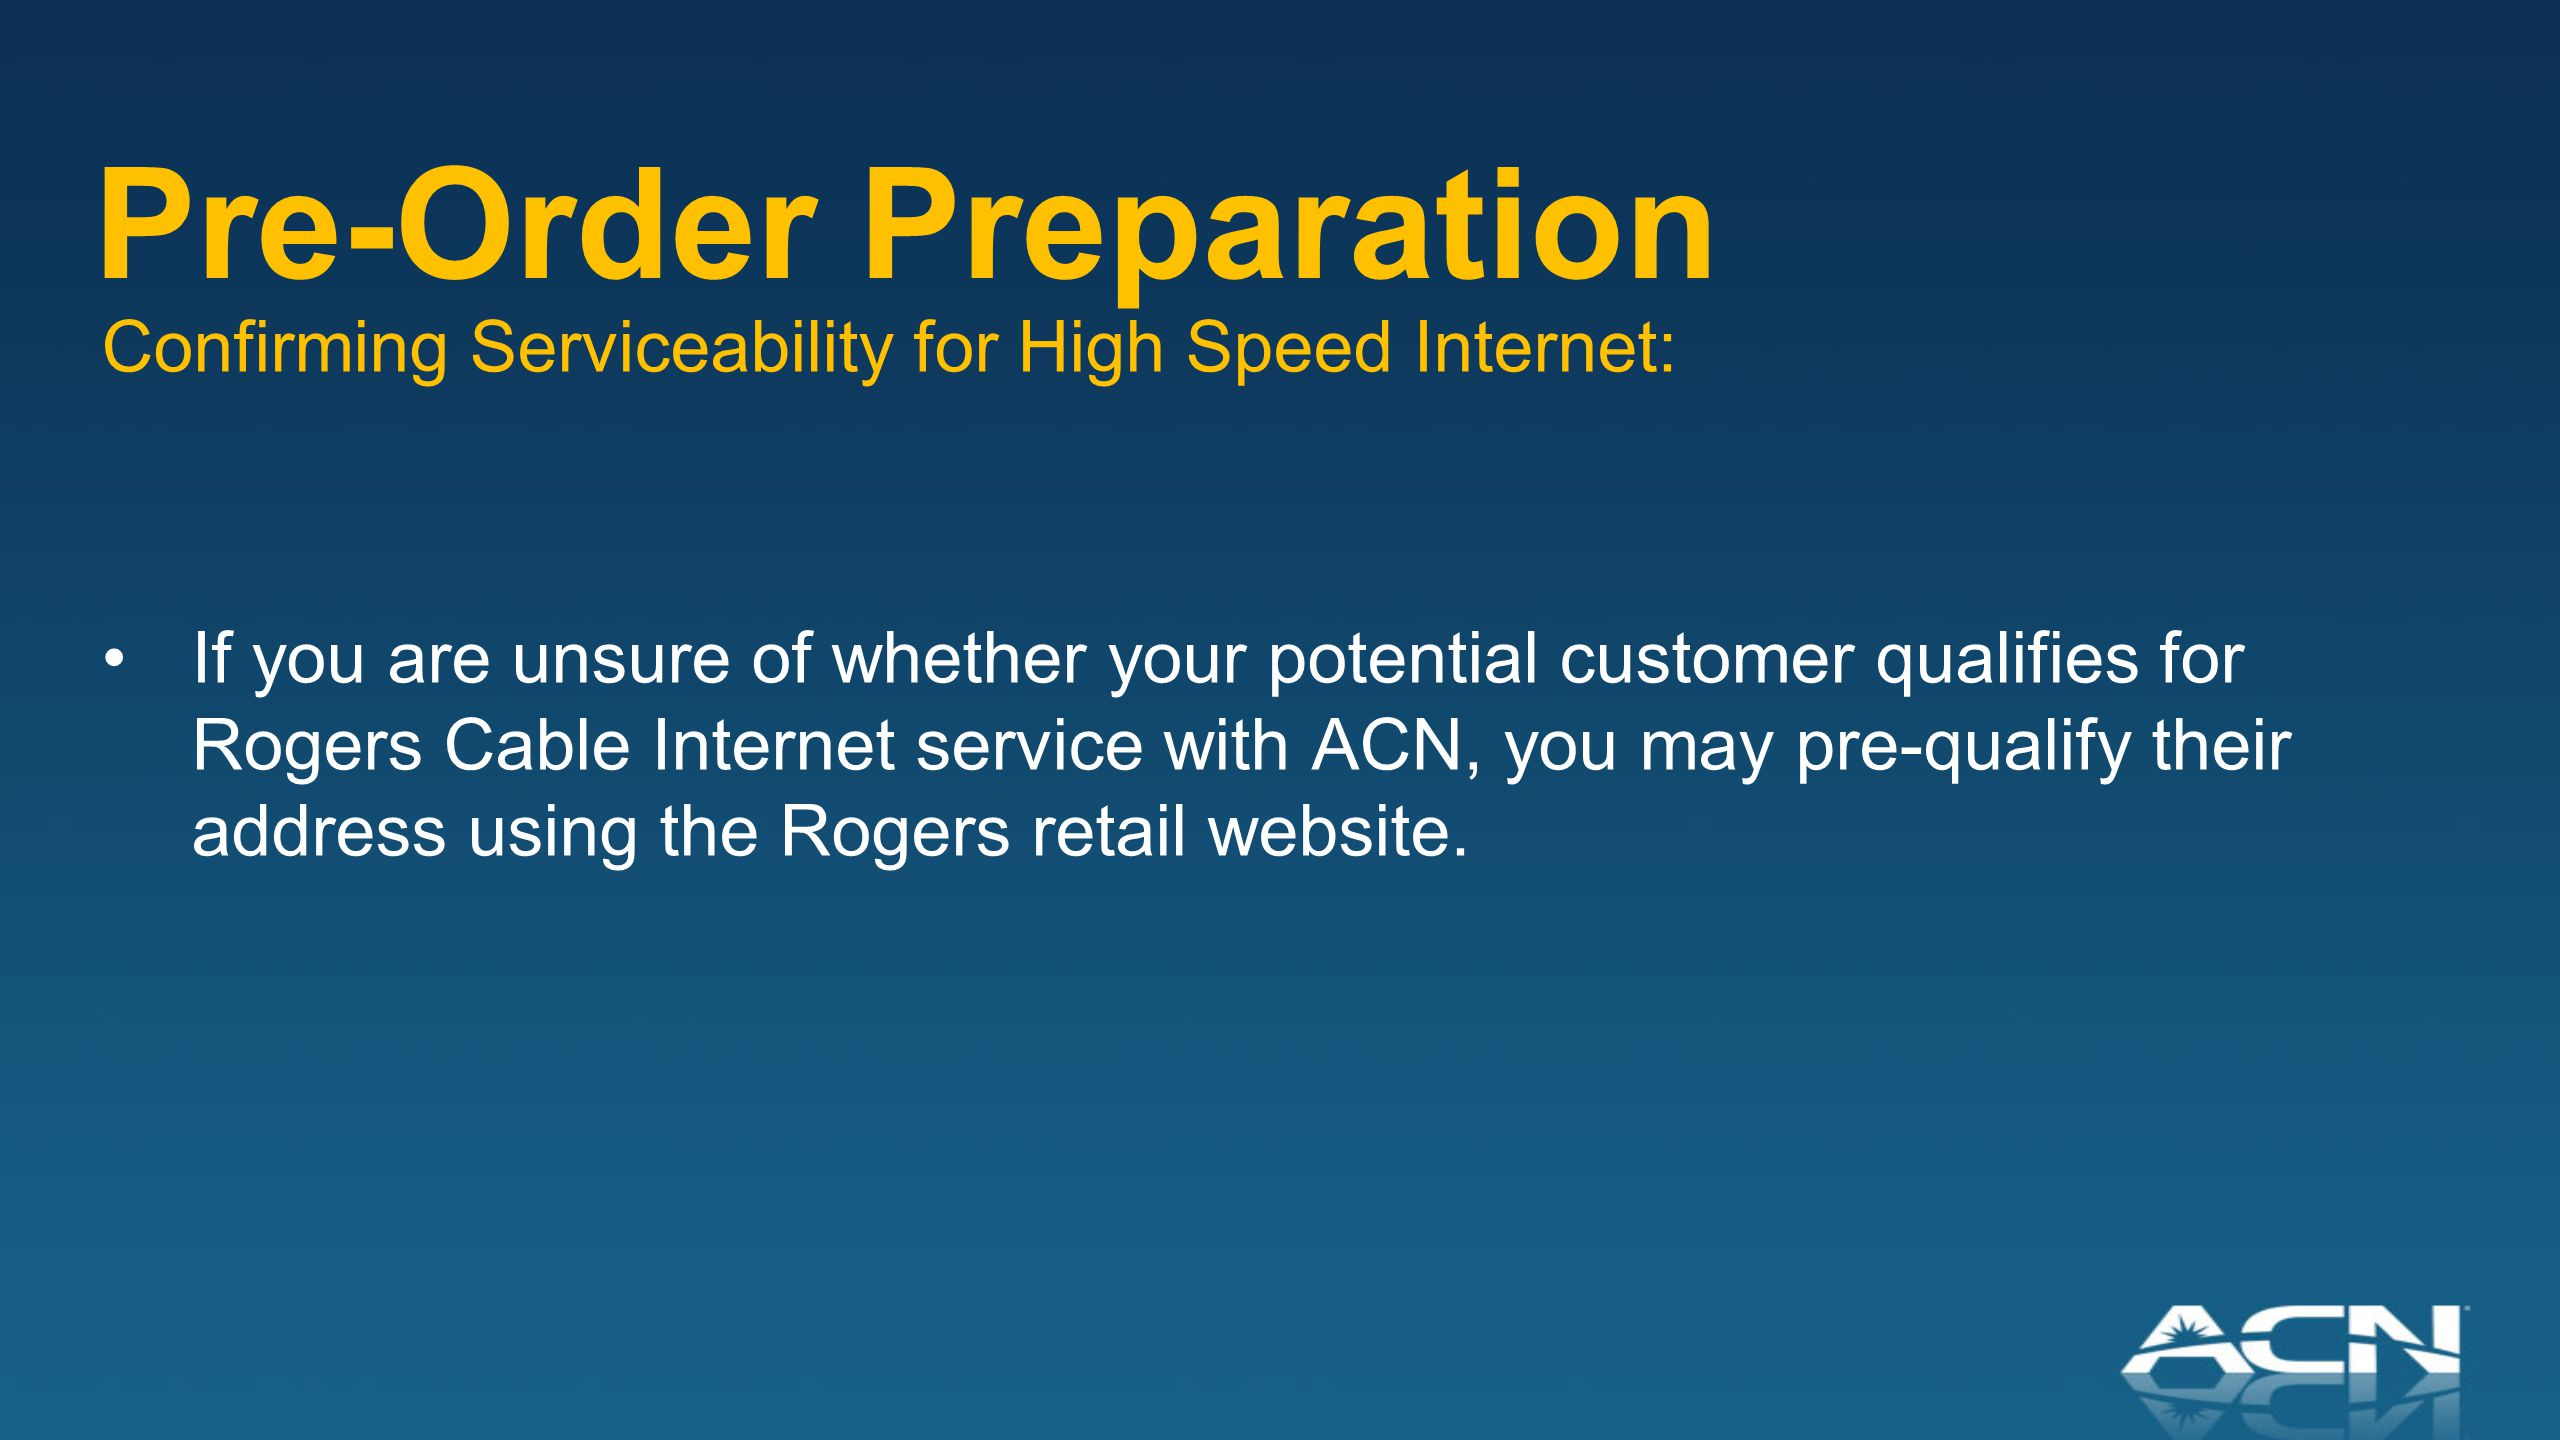 Pre-Order Preparation Confirming Serviceability for High Speed Internet: If you are unsure of whether your potential customer qualifies for Rogers Cable Internet service with ACN, you may pre-qualify their address using the Rogers retail website.